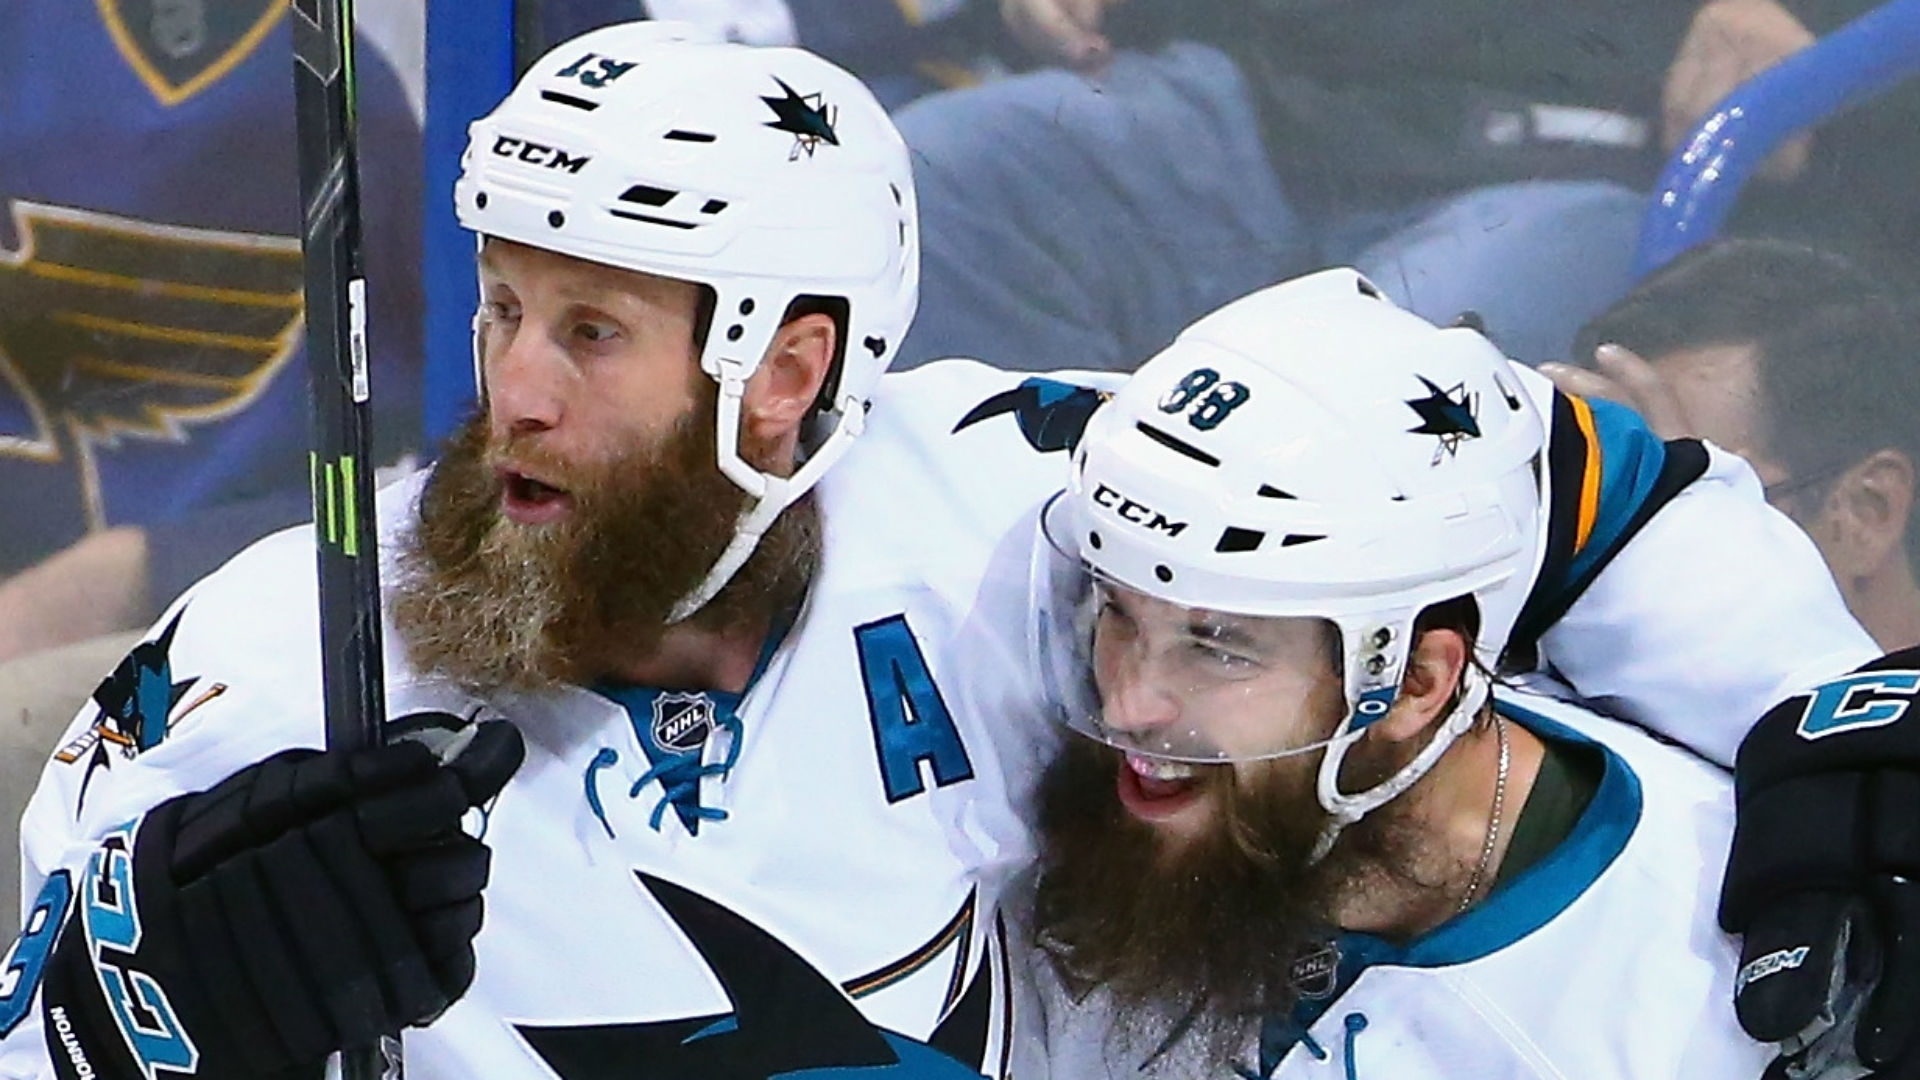 Joe-thornton-brent-burns-052816-getty-ftrjpg_1mvwpr1j1mnv217j5q2la6epd9